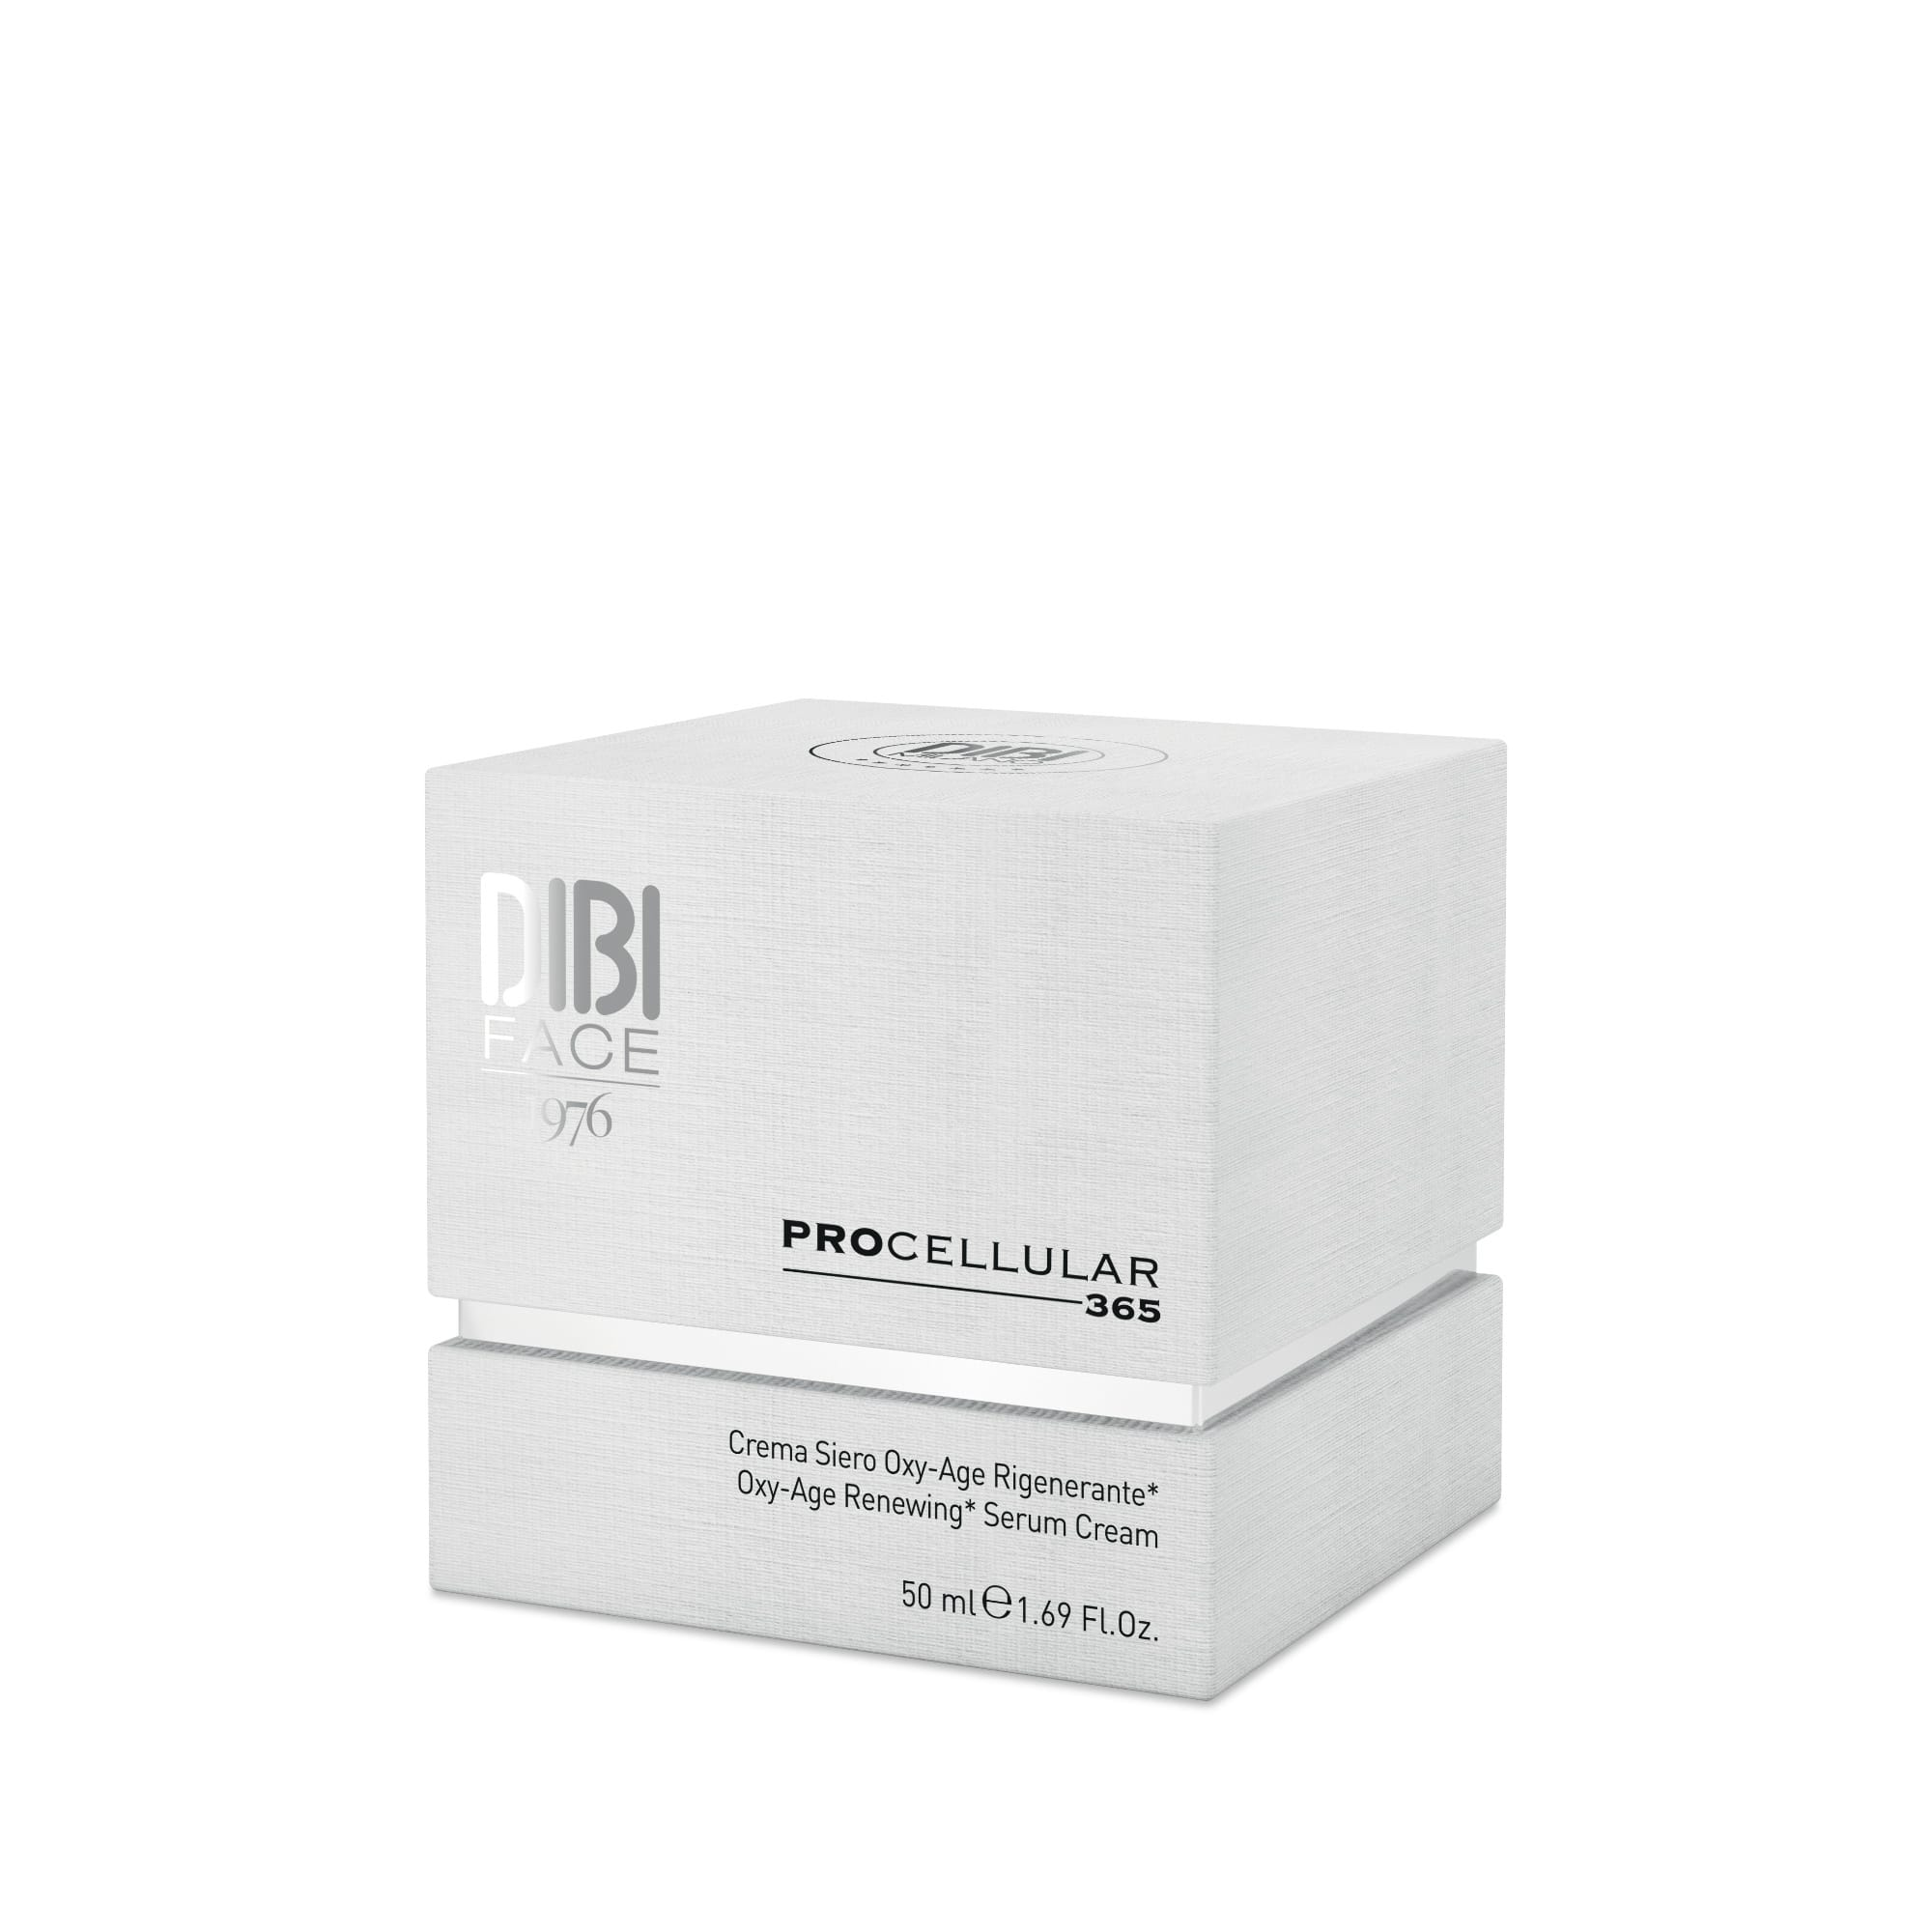 DIBI FACE PROCELLULAR 365 Oxy-Age Renewing Serum Cream